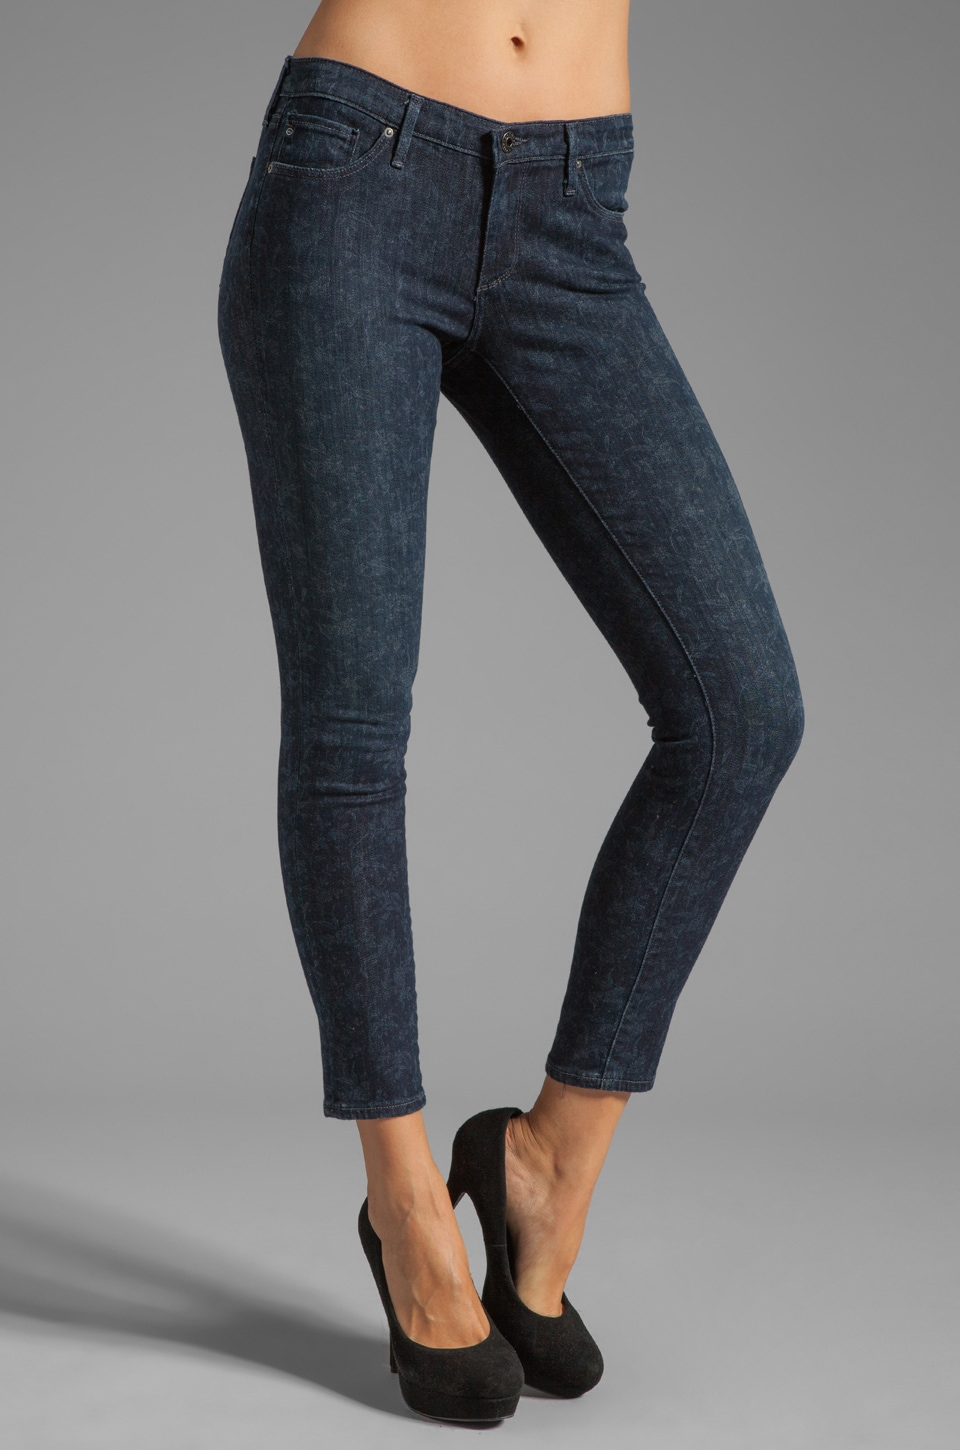 AG Adriano Goldschmied The Legging Ankle Jean in Hyde